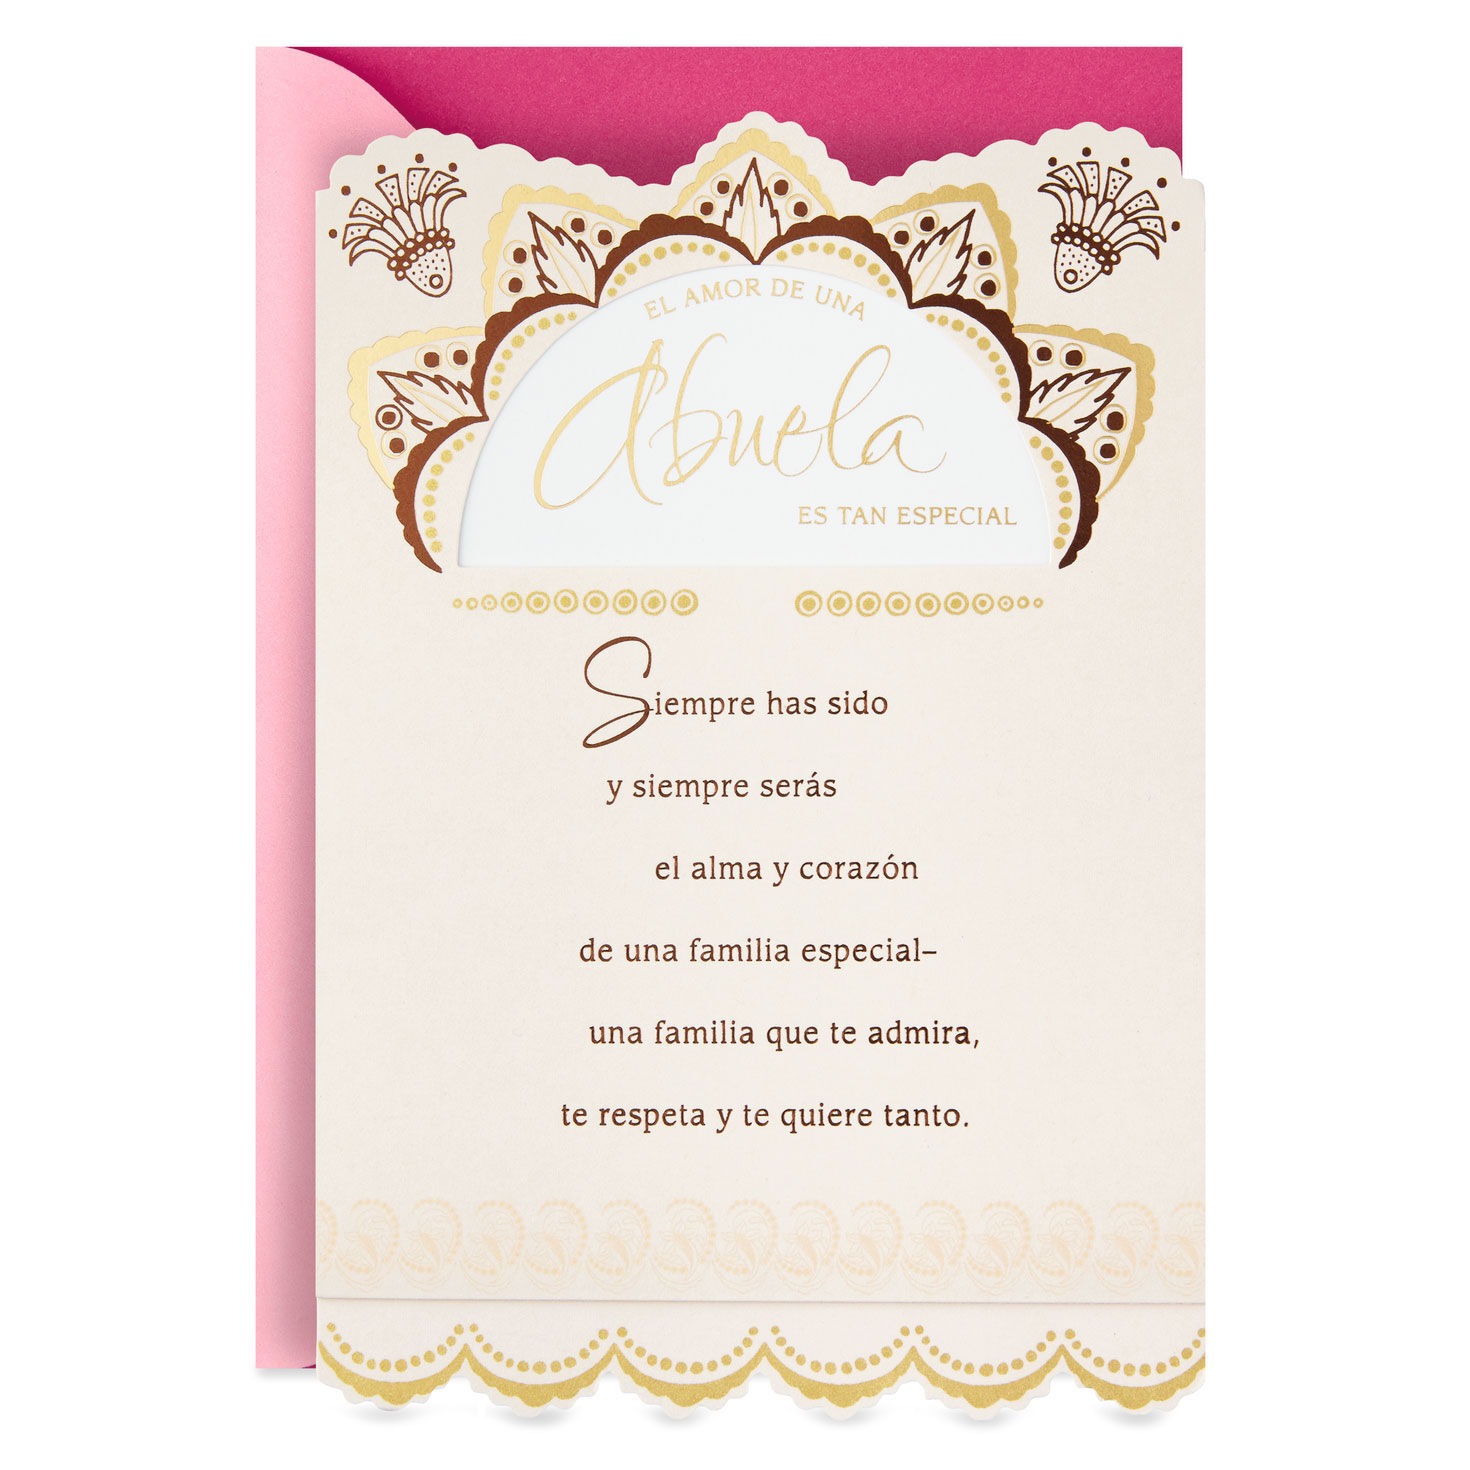 photograph about Spanish Birthday Cards Printable identified as Get pleasure from of a Grandmother Spanish-Language Birthday Card